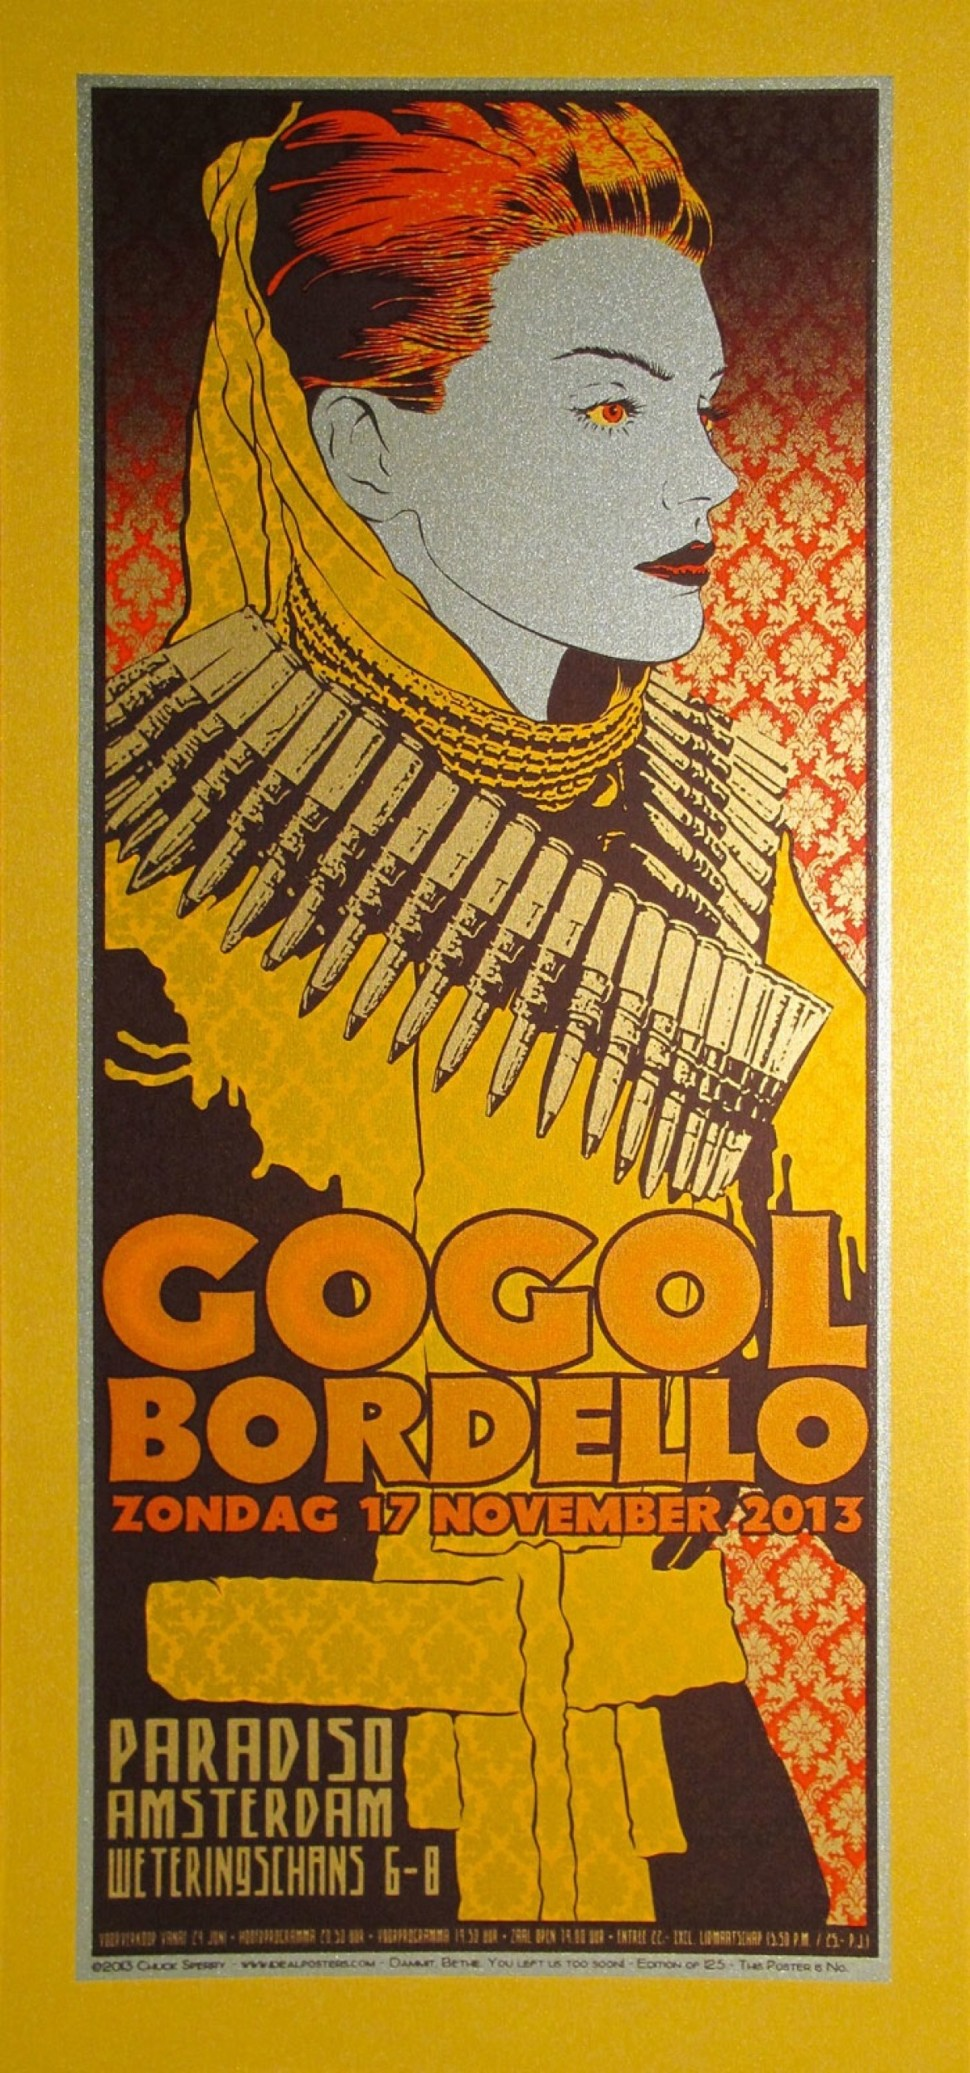 GOGOL-BORDELLO-GOLD